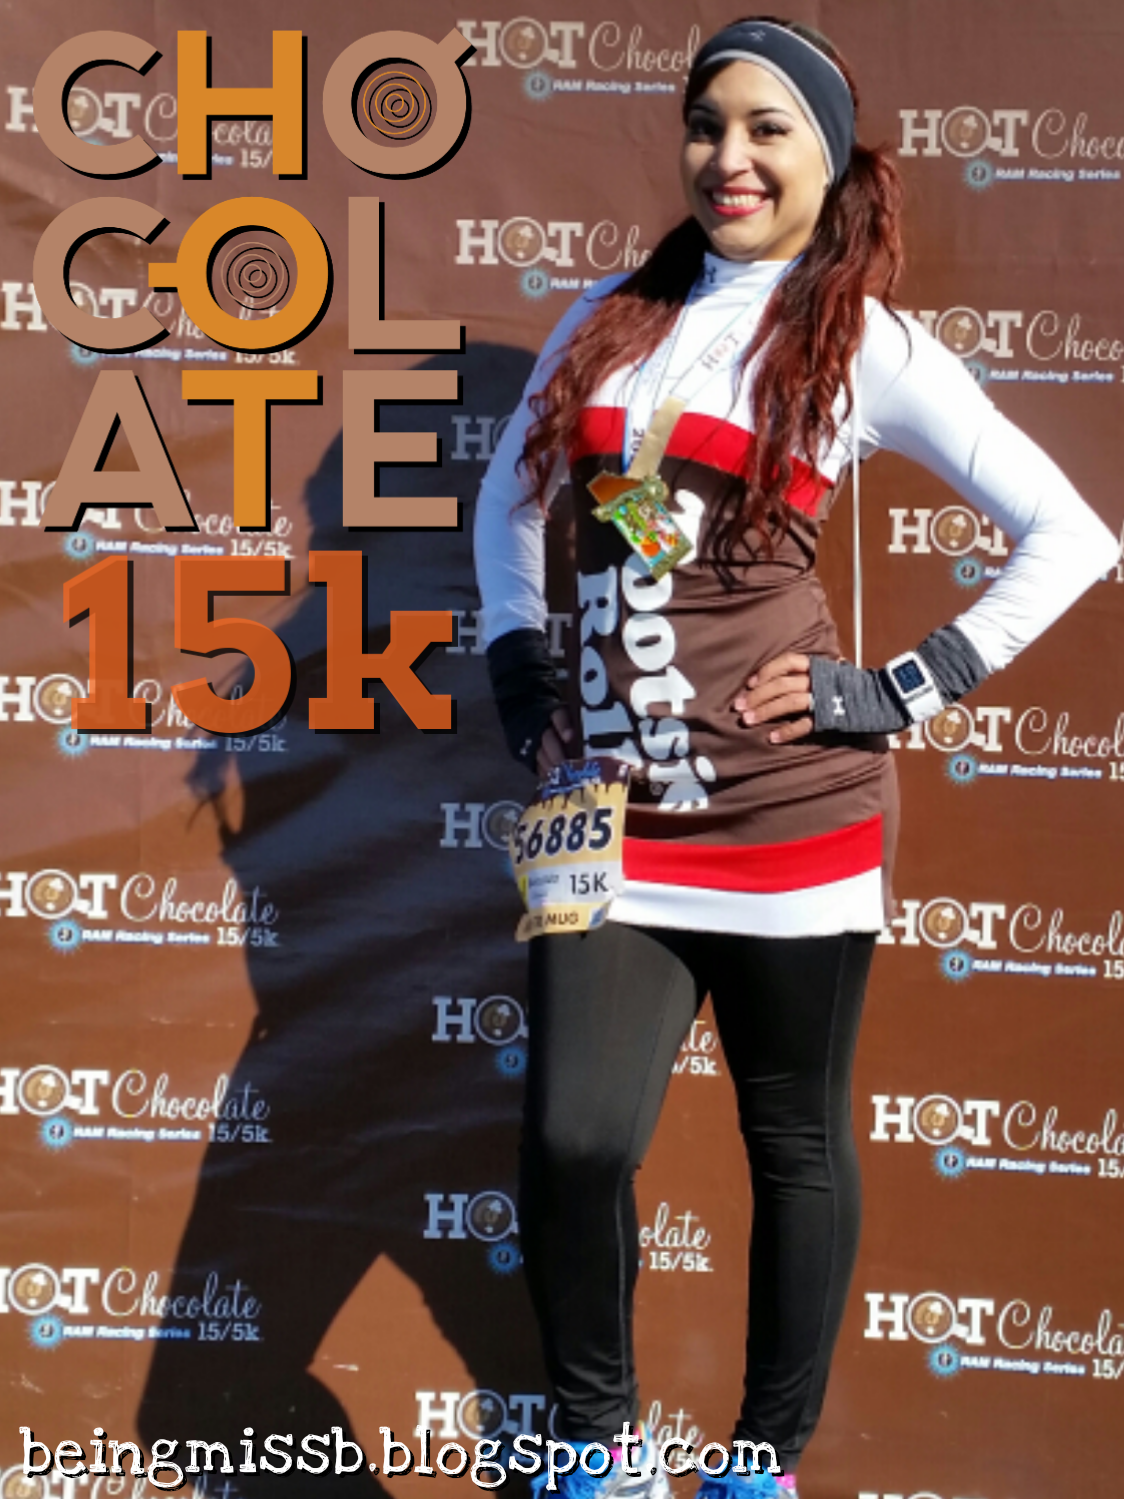 benilda blogs: Hot Chocolate 15k